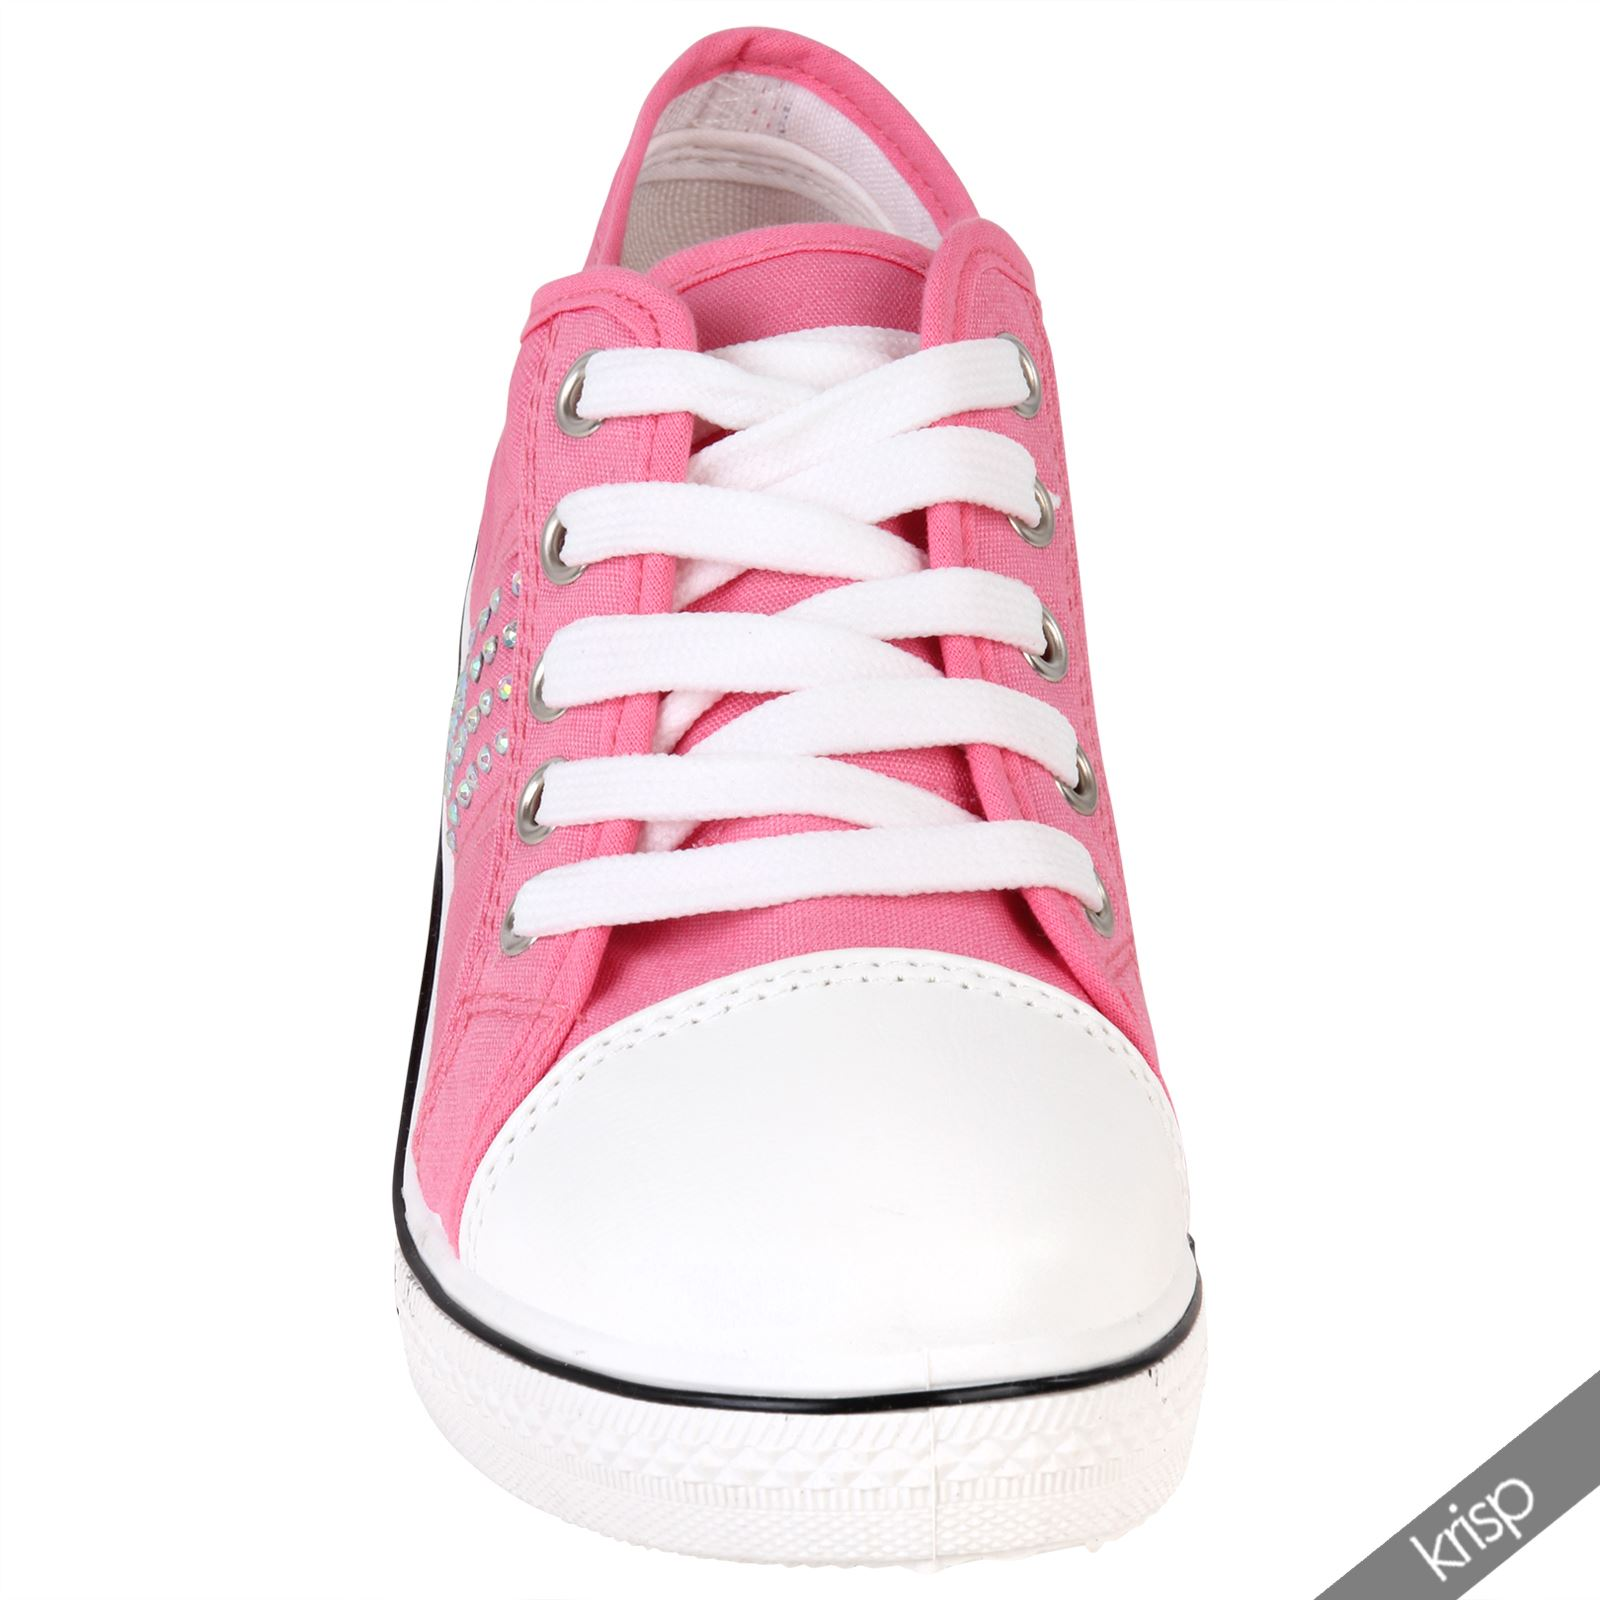 Womens Canvas Shoes Lace Up Sneakers